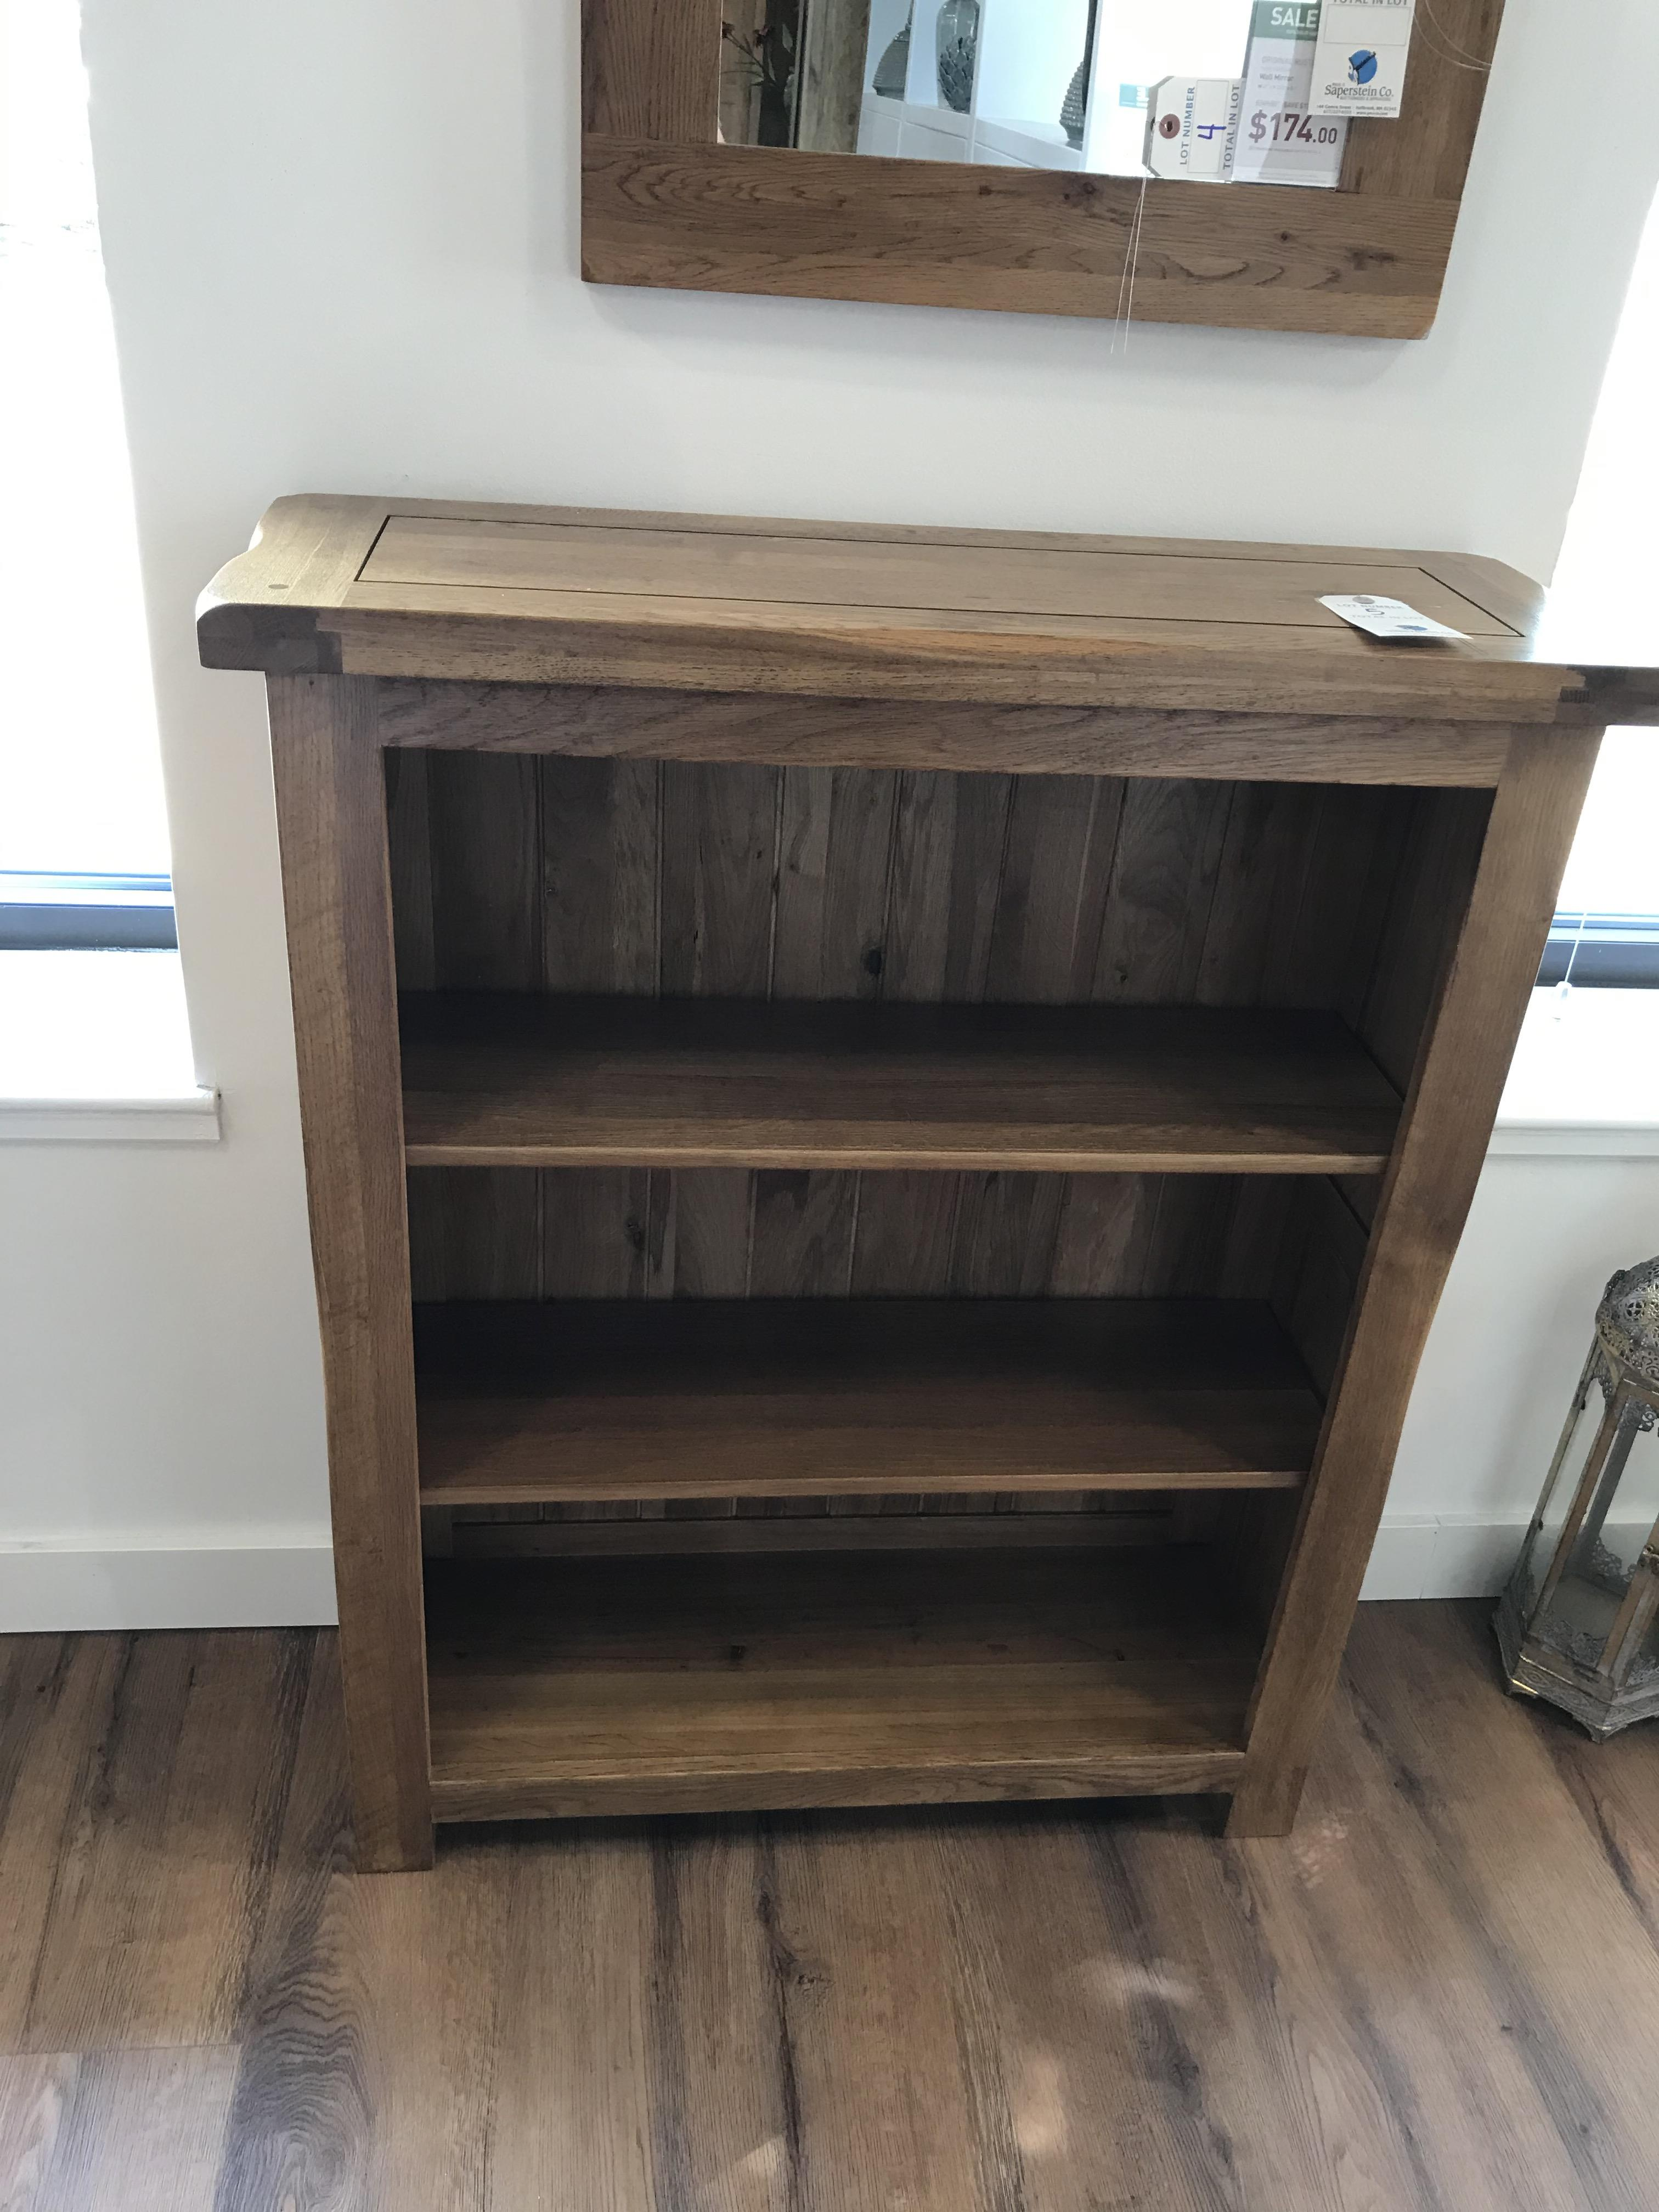 Small Bookcase (Original Rustic) See Picture For Dimensions and Product Info